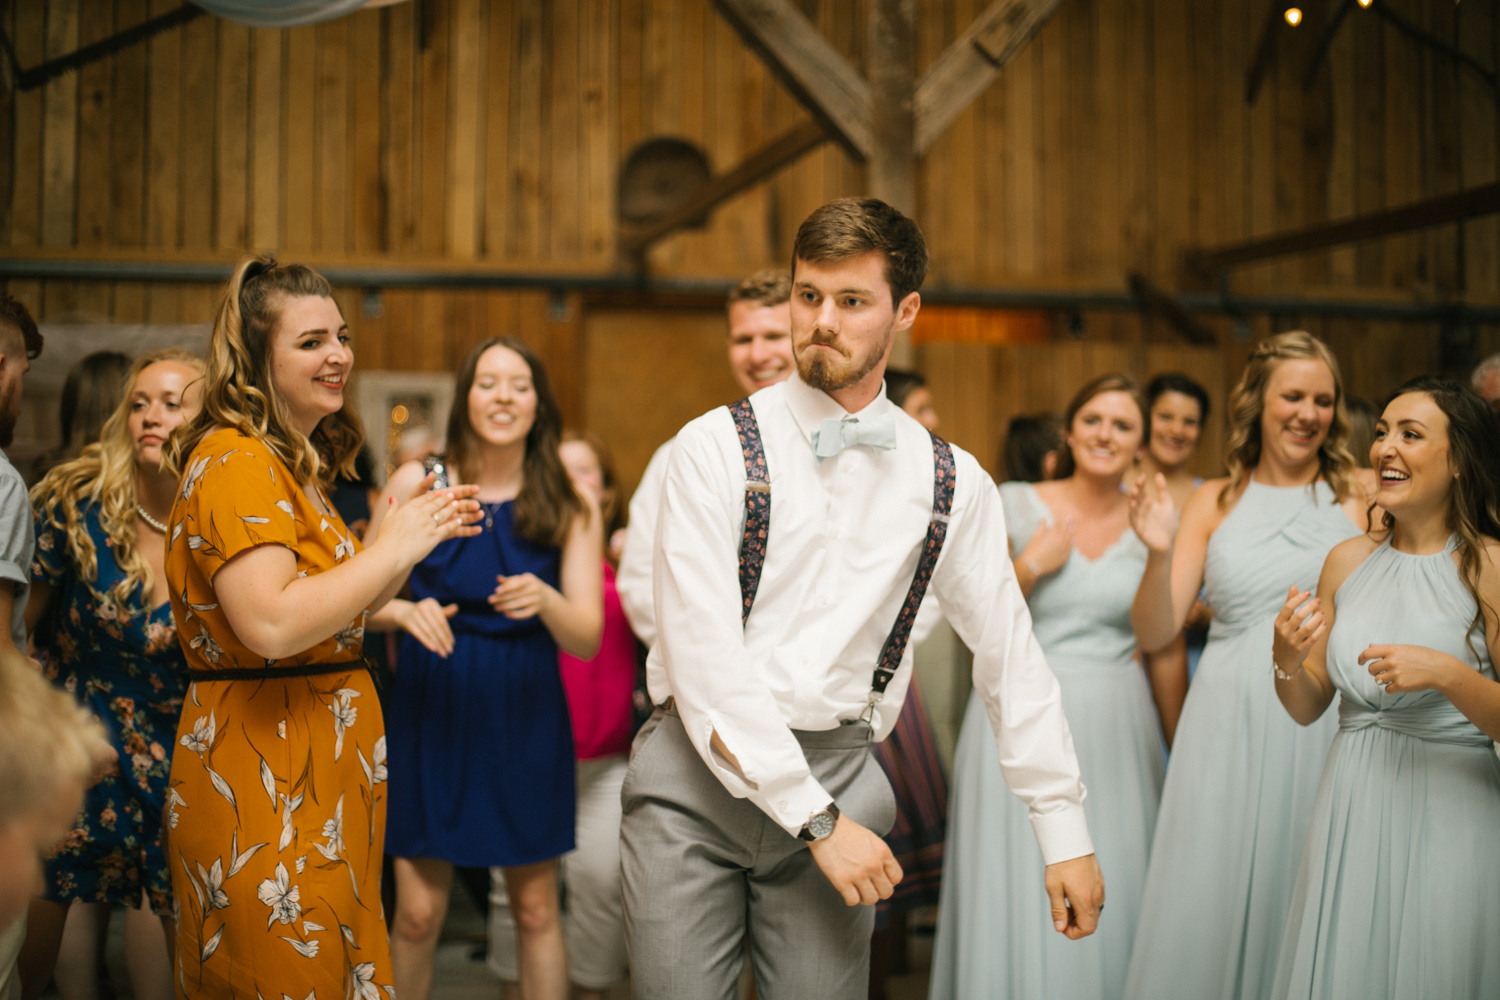 2019.06.01_CraskWedding_Starks-203.jpg